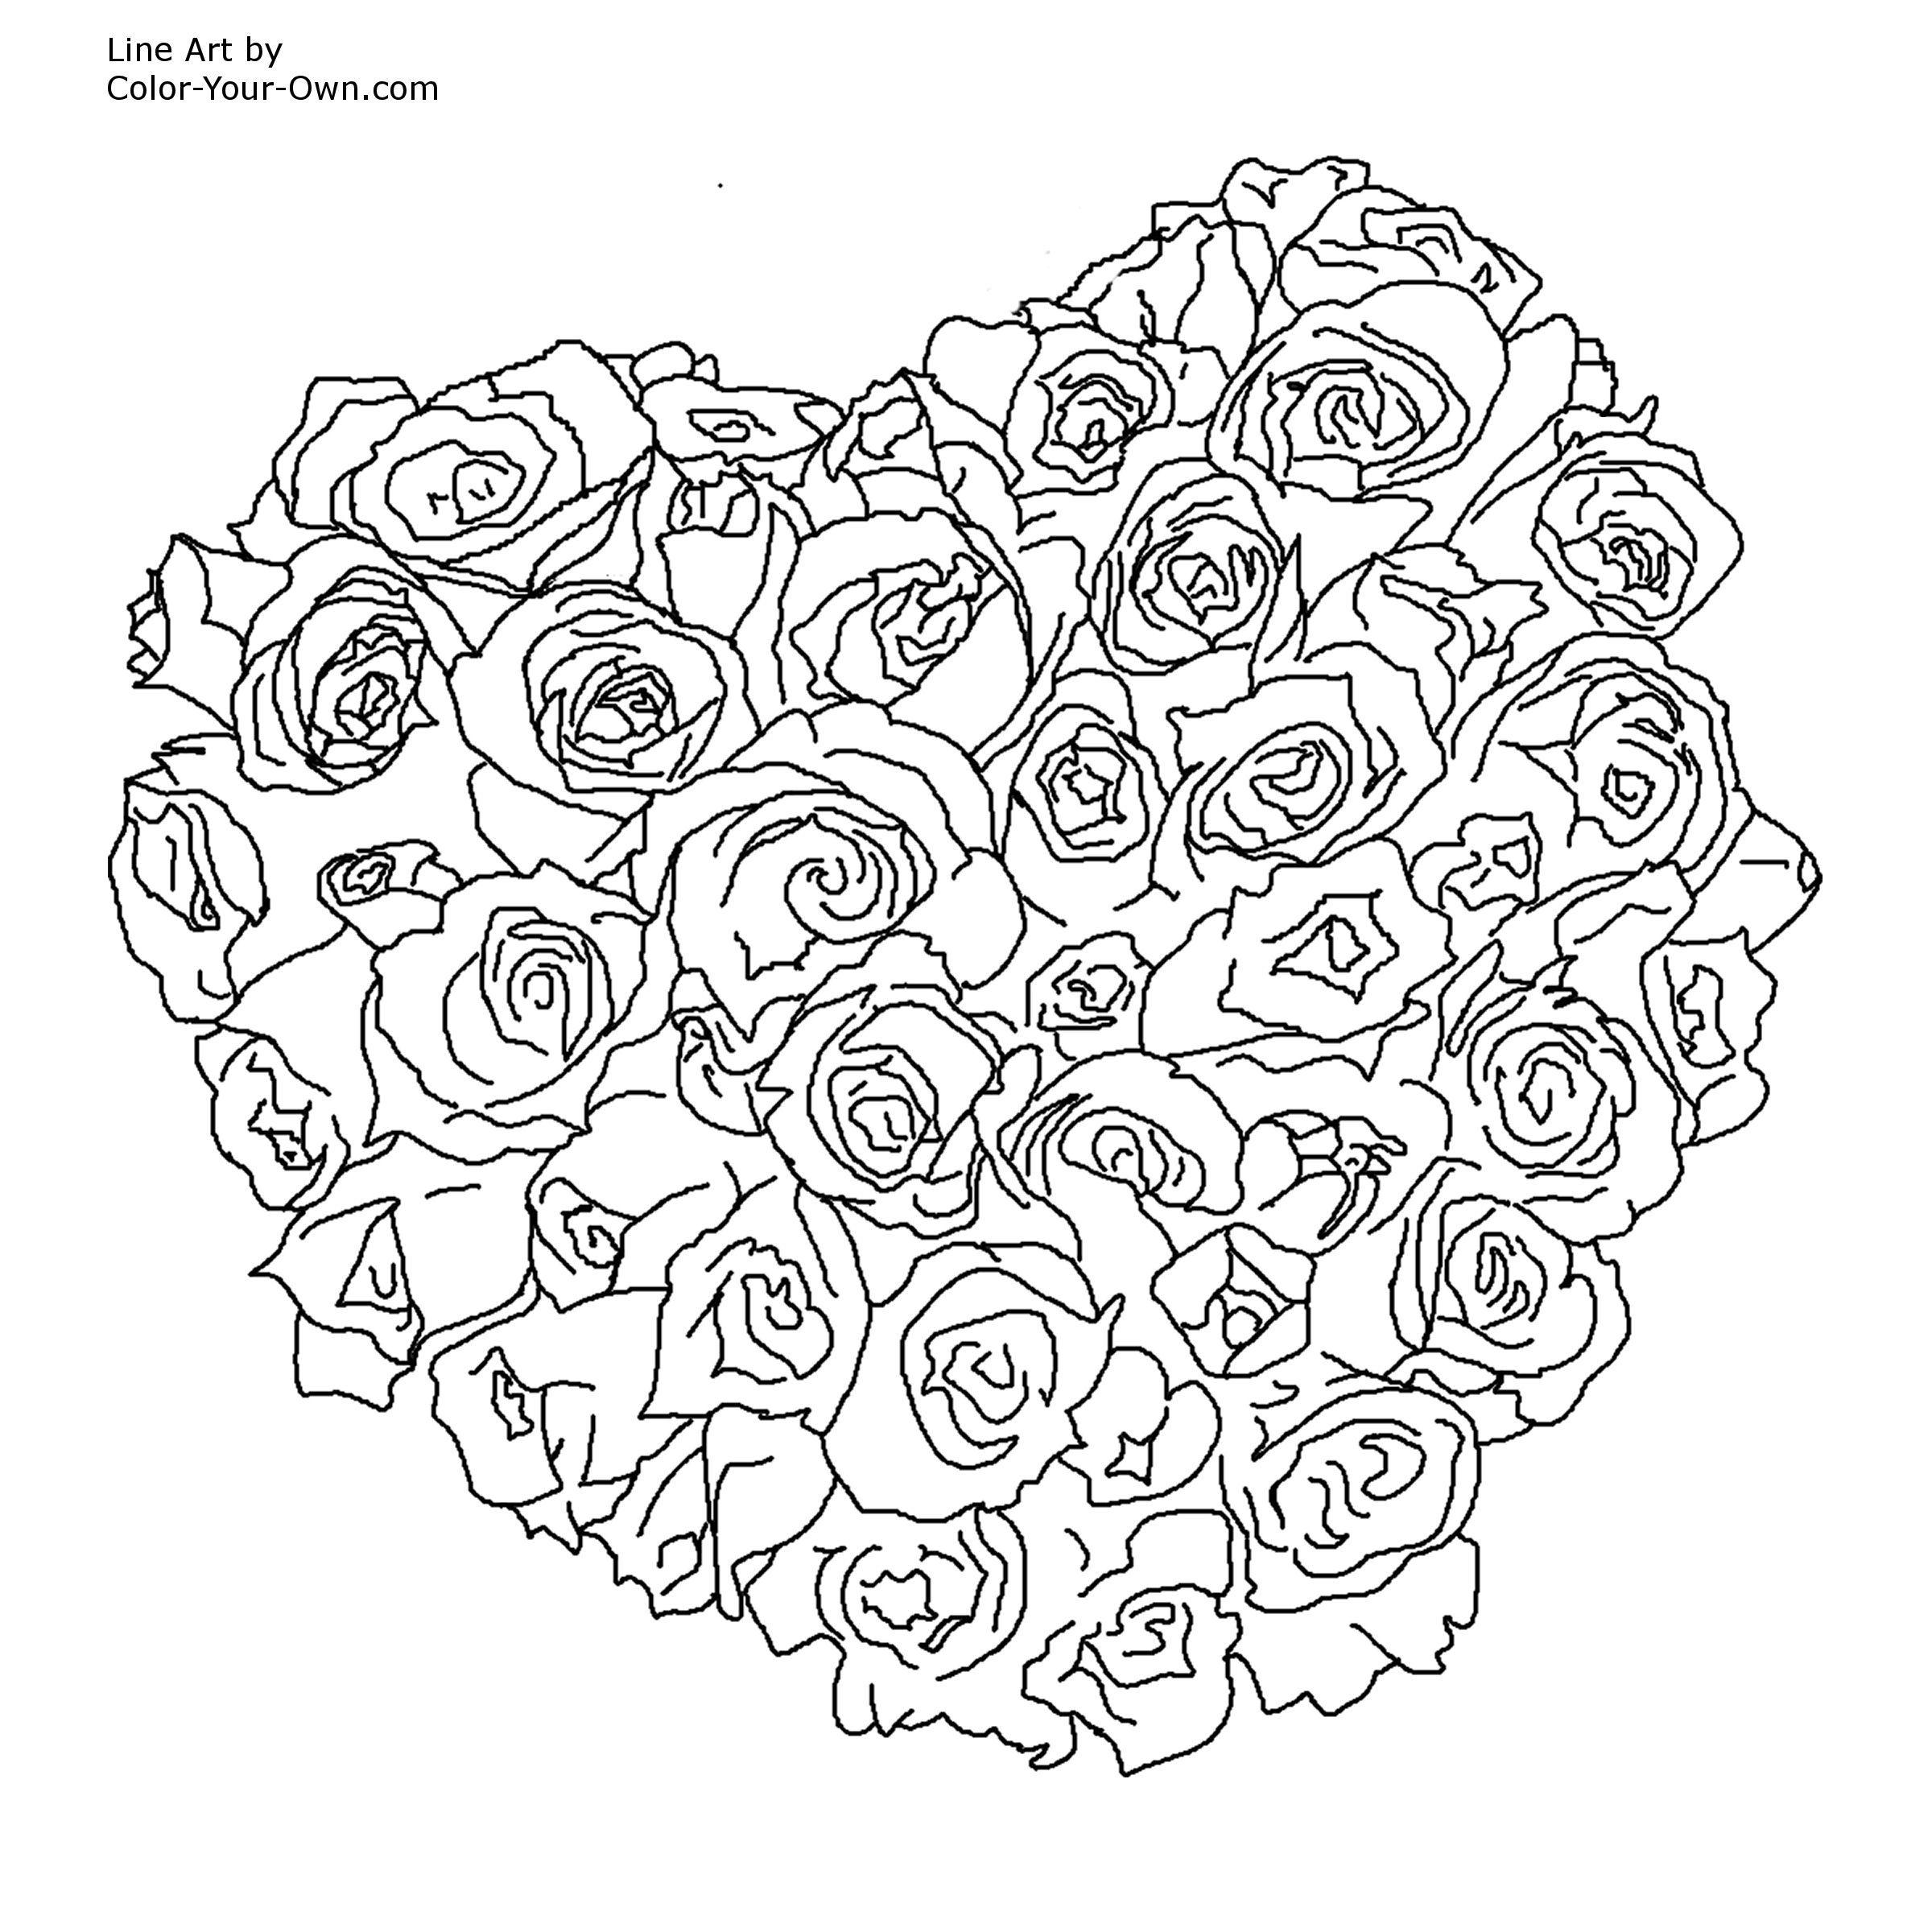 coloring pages of mandala to print | For the 8.5 x 11 printable size ...